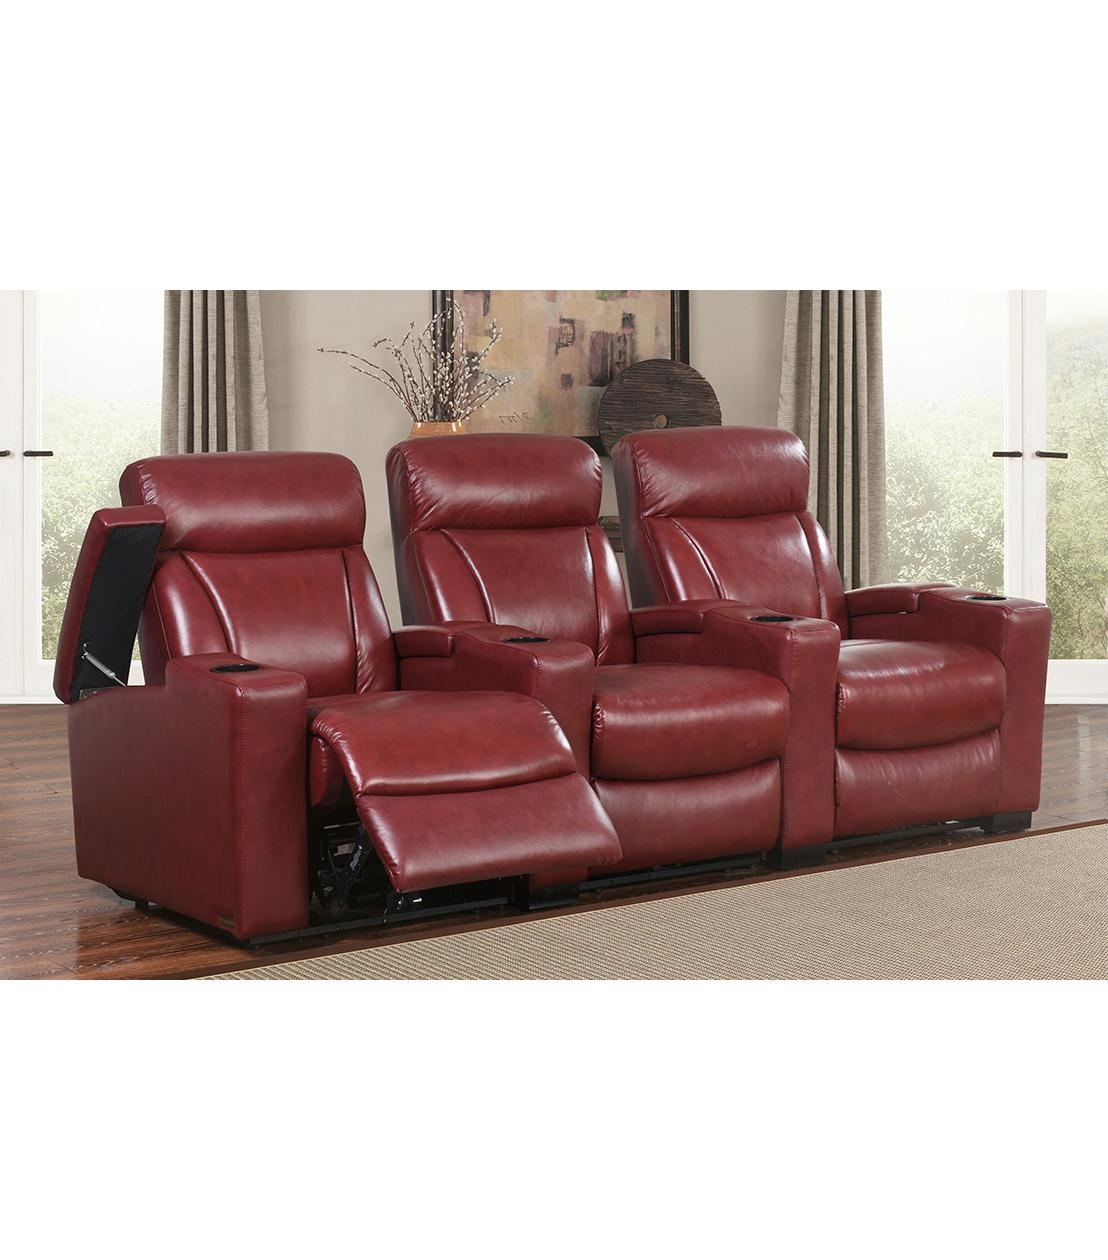 Recliners : Romano 3 Piece Recliners, Red Within Abbyson Recliners (View 18 of 20)